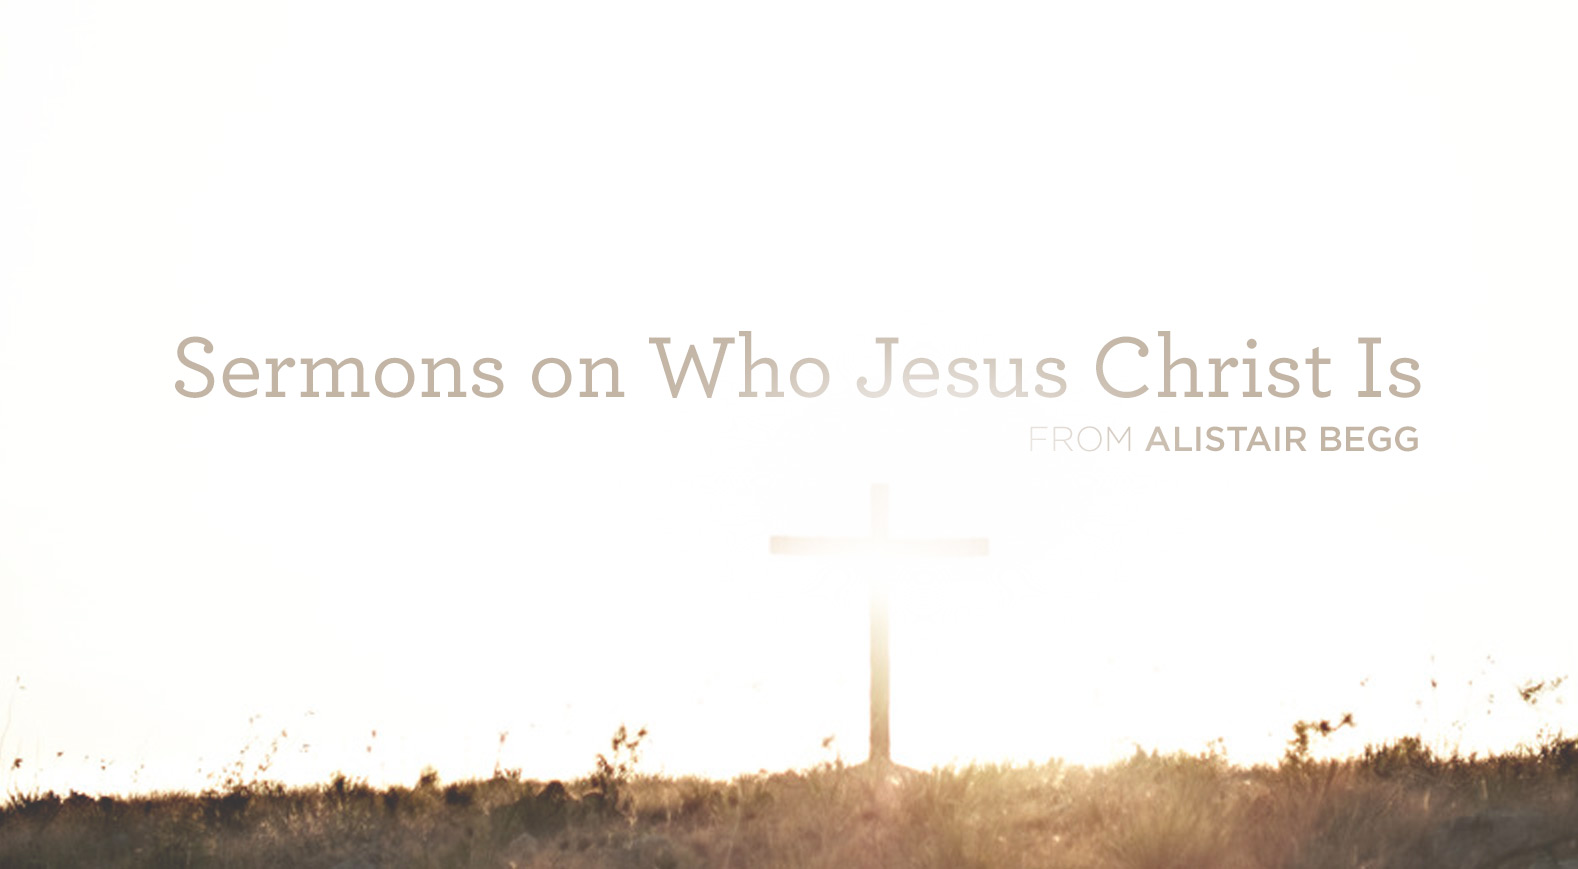 thumbnail image for Sermons on Who Jesus Christ Is